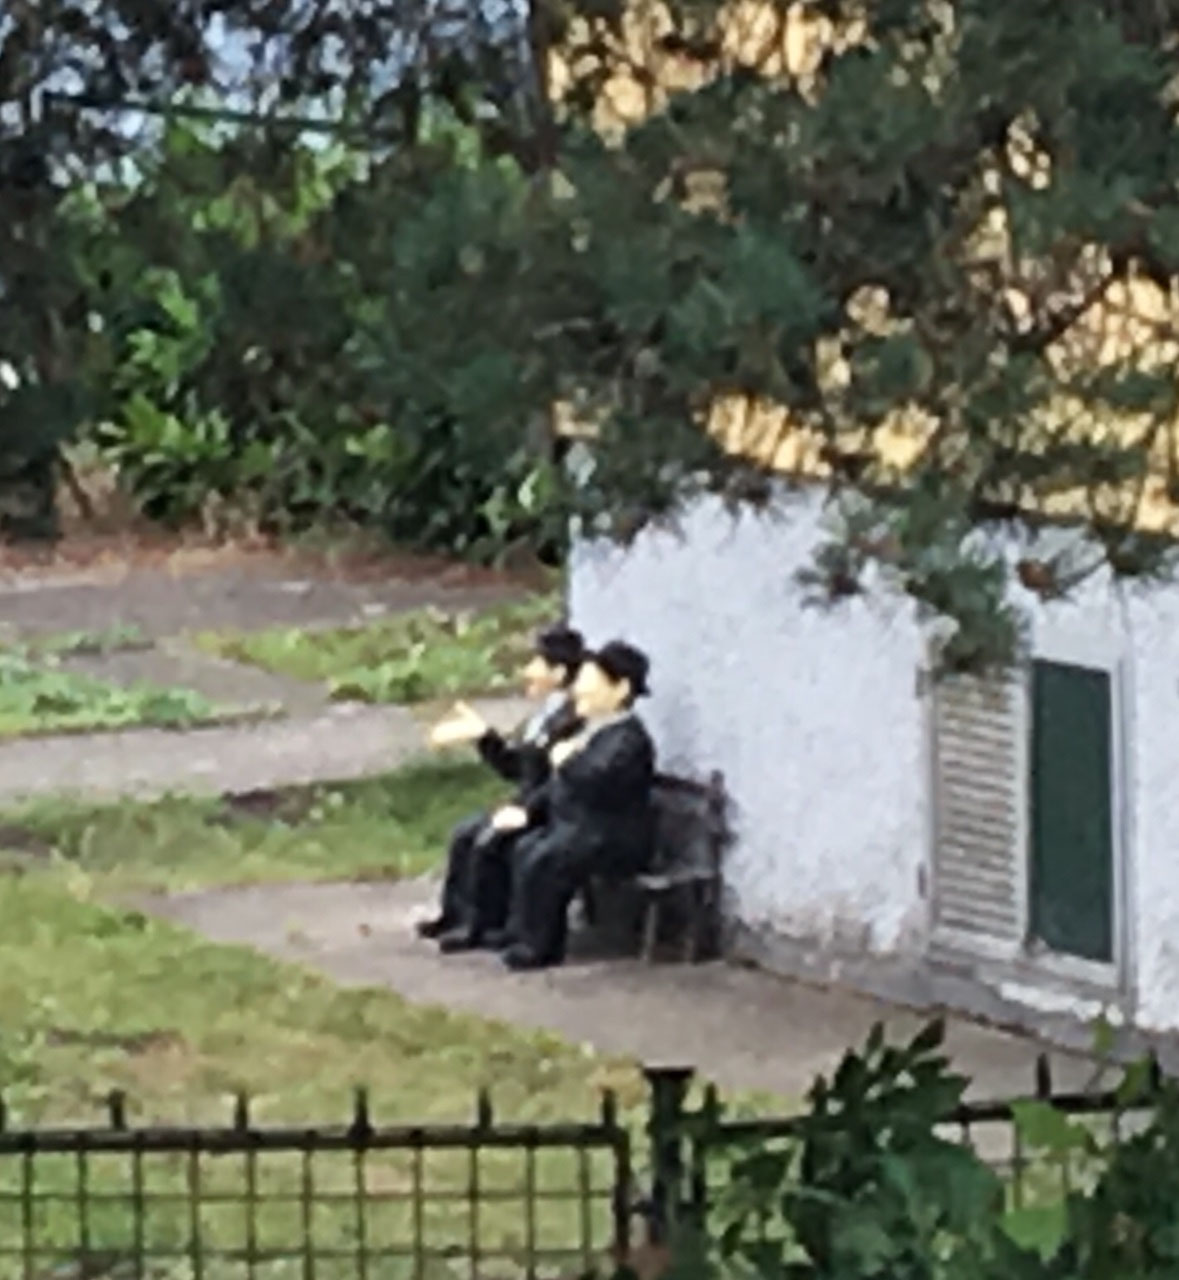 Laurel and Hardy?